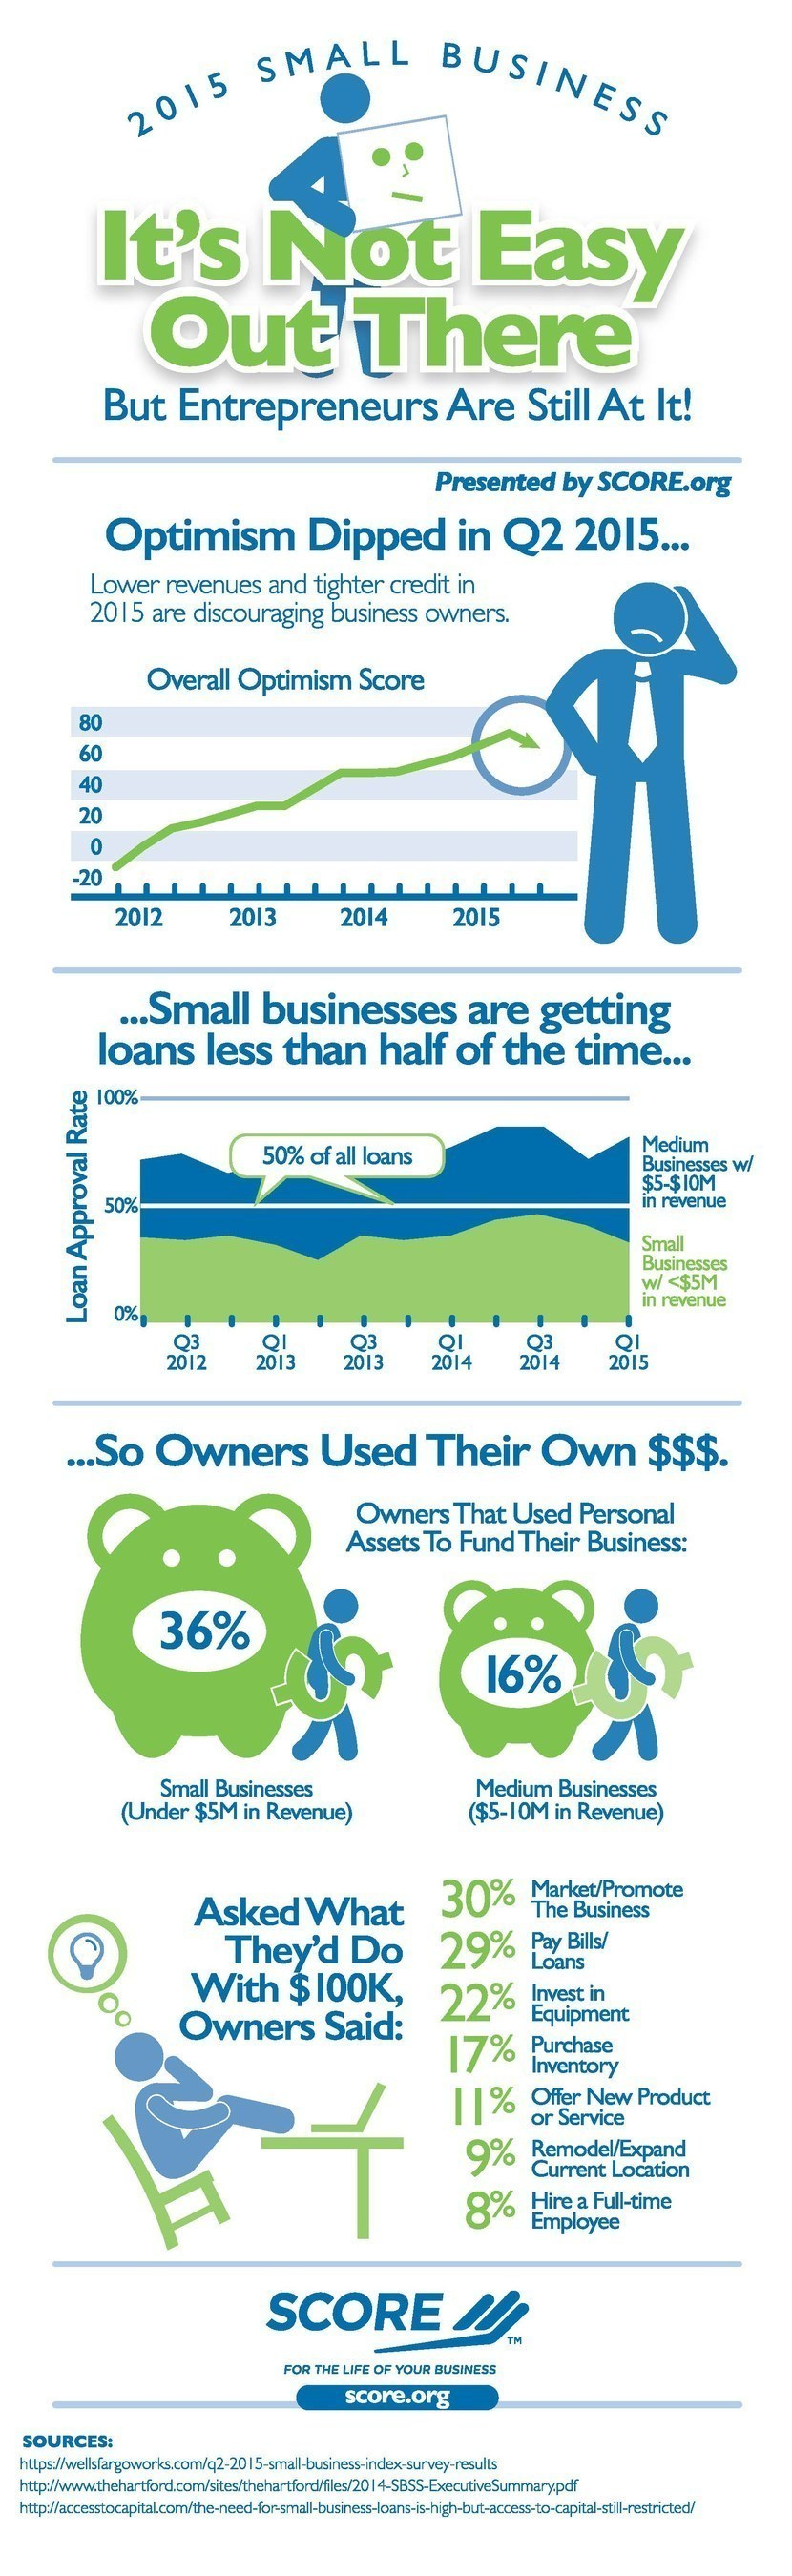 SCORE, - www.score.org - mentors to America's small businesses, has gathered statistics on the financial ...